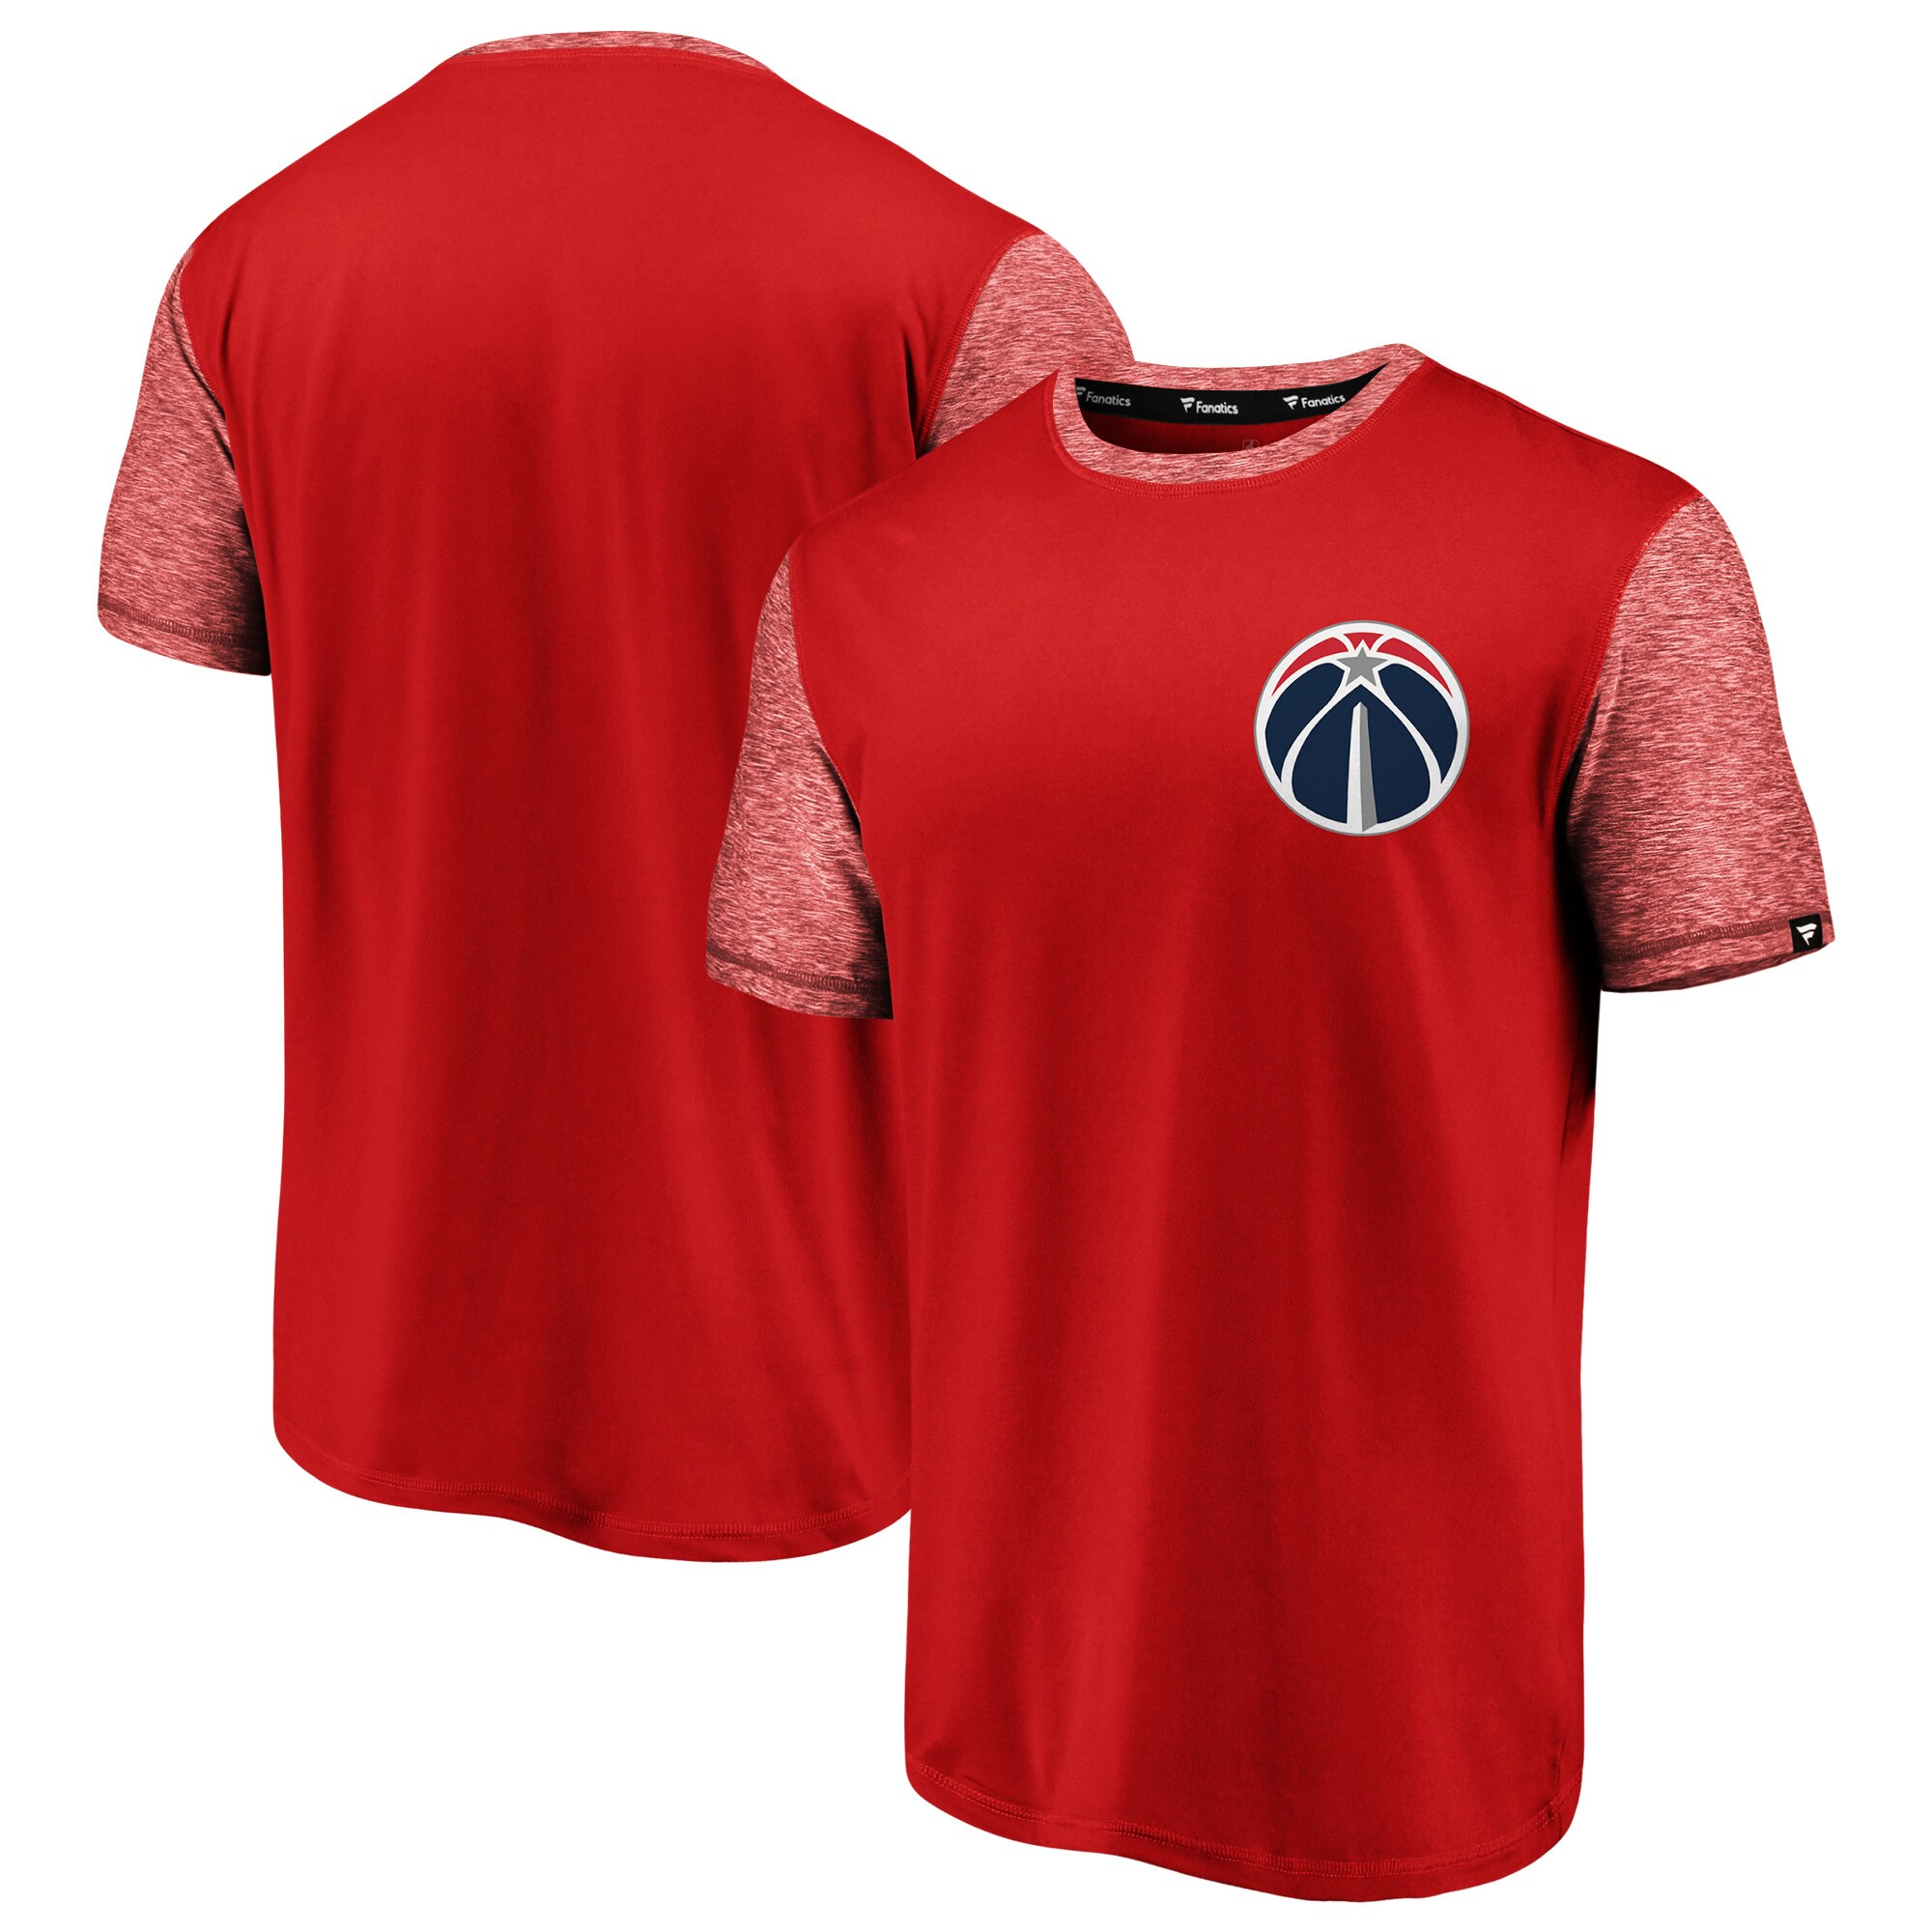 Washington Wizards Fanatics Branded Made to Move Static Performance T-Shirt - Red/Heathered Red